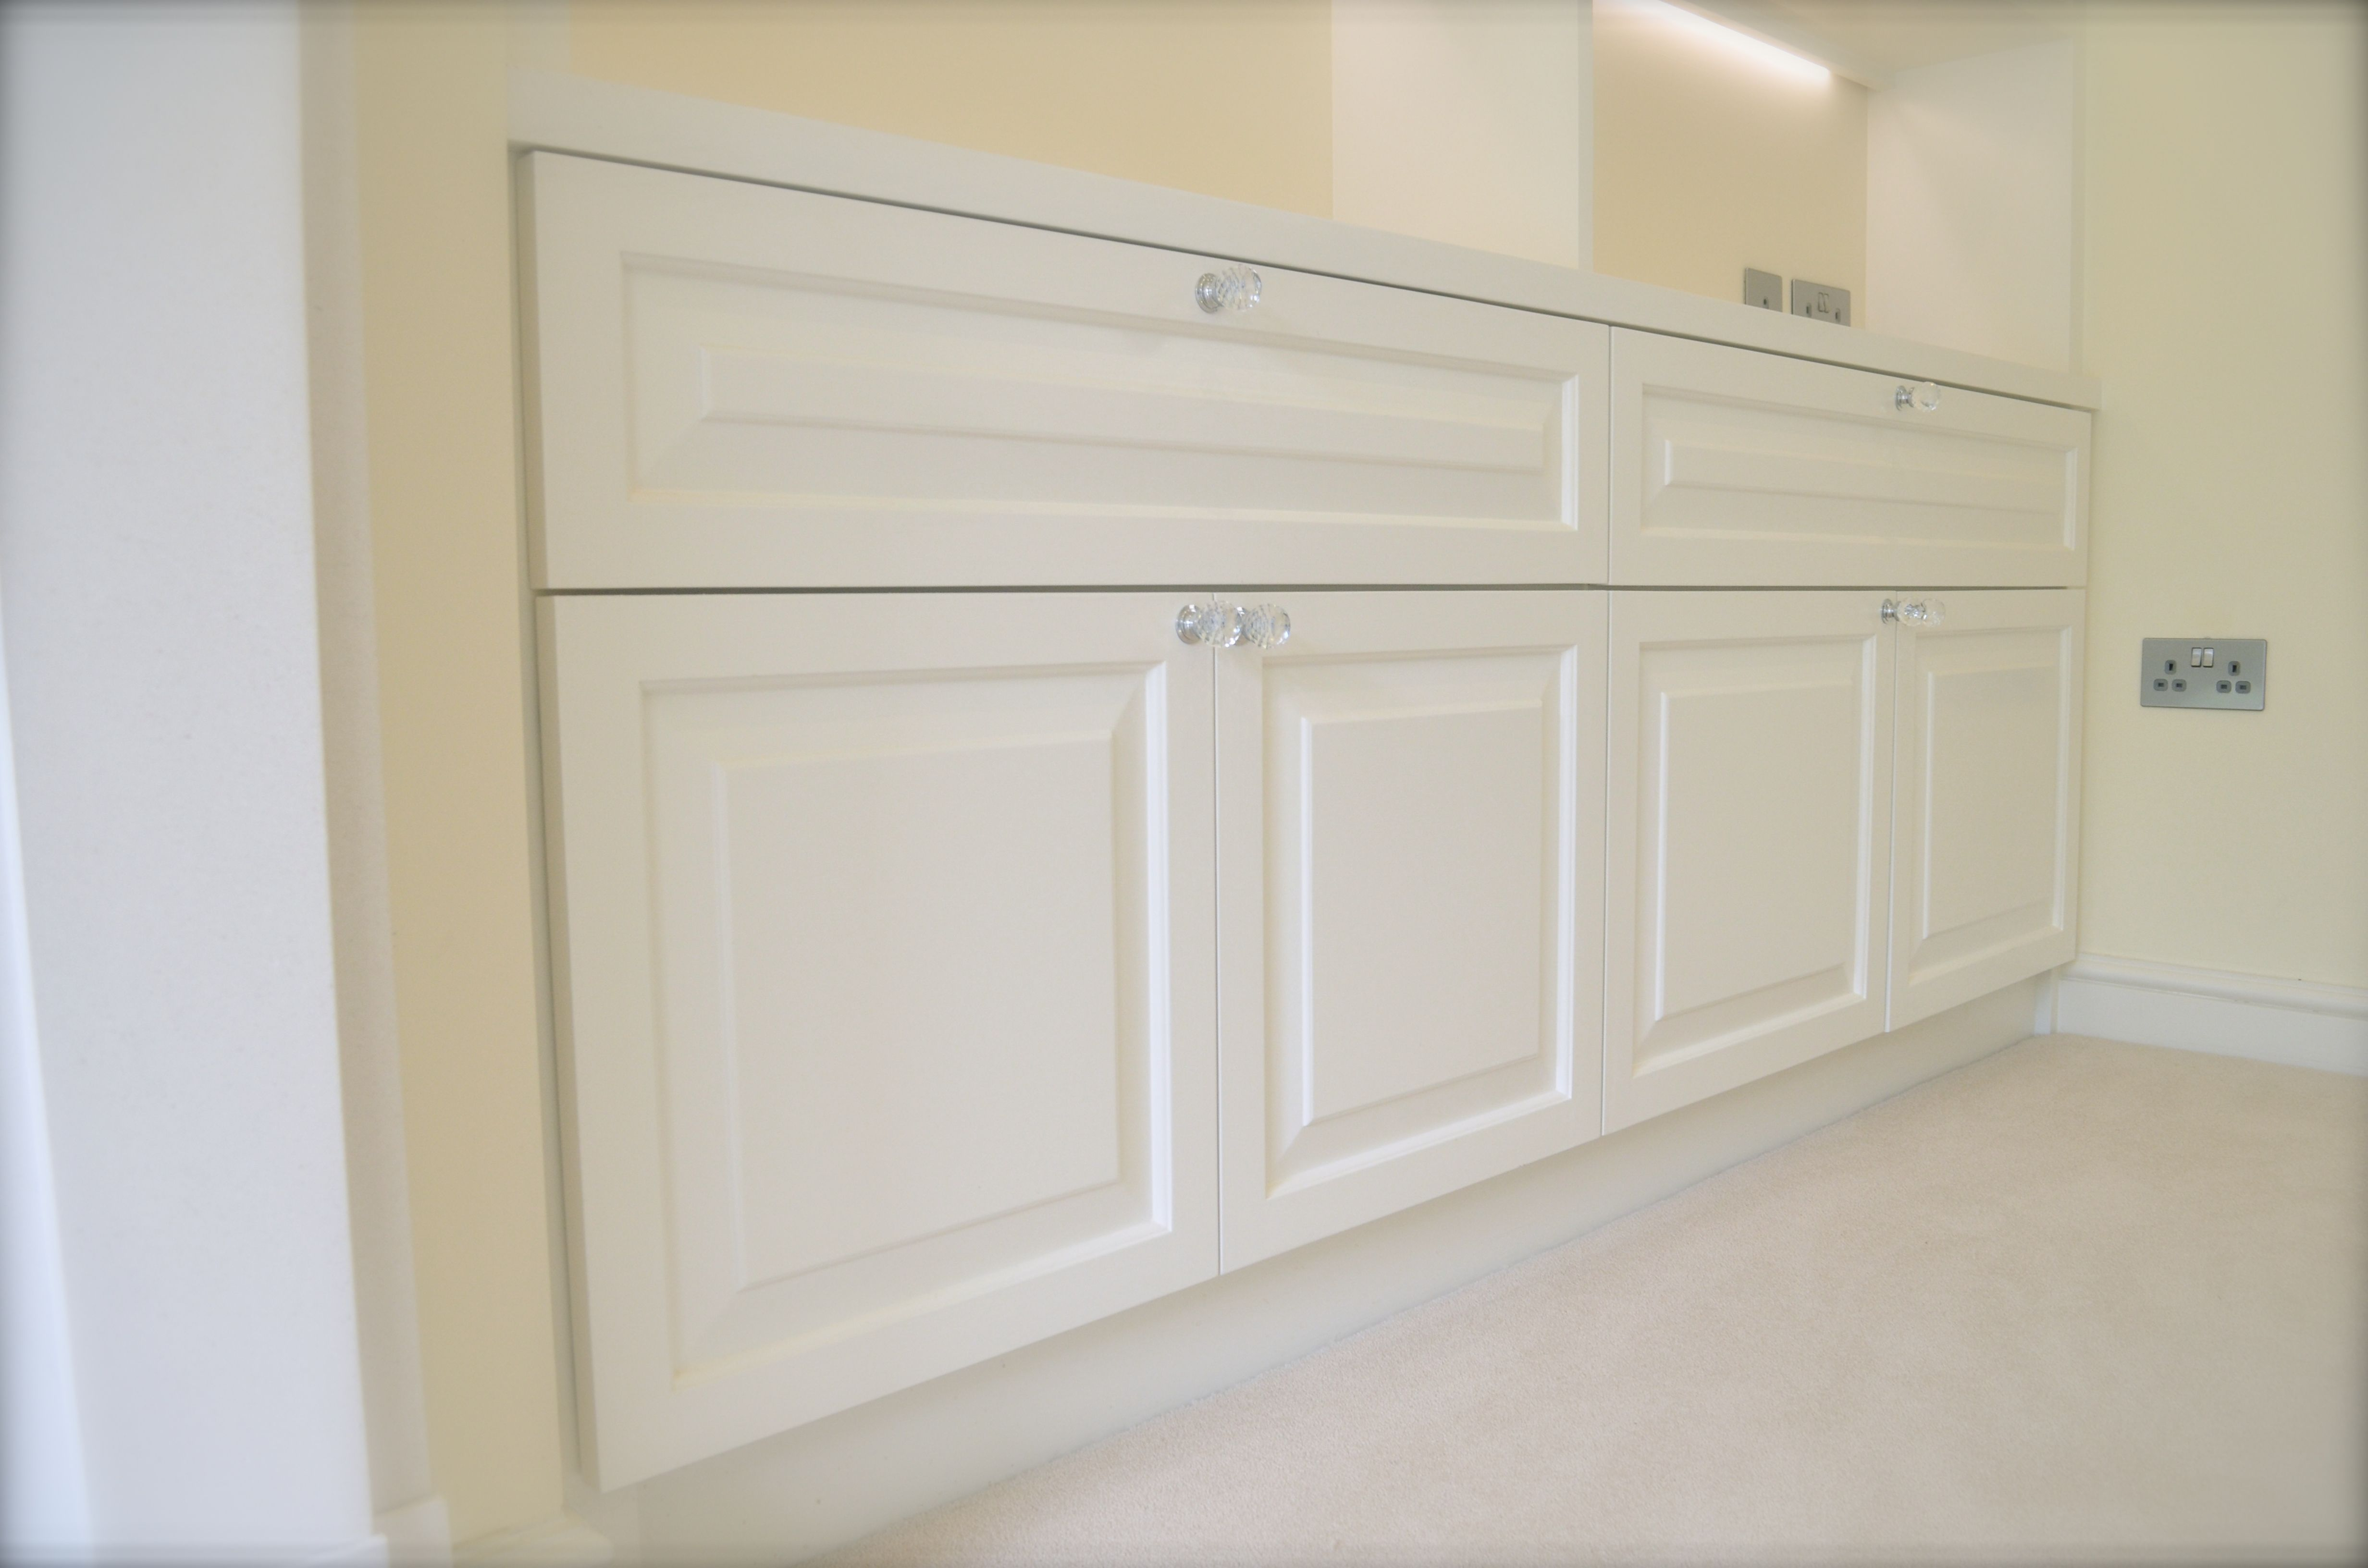 Raised And Fielded Cupboard Doors With Ovolo Reveal And Chamfers Made From Hardwood Tulipwood Aka Poplar Hand Pai Cupboard Doors Wimborne White Panel Doors